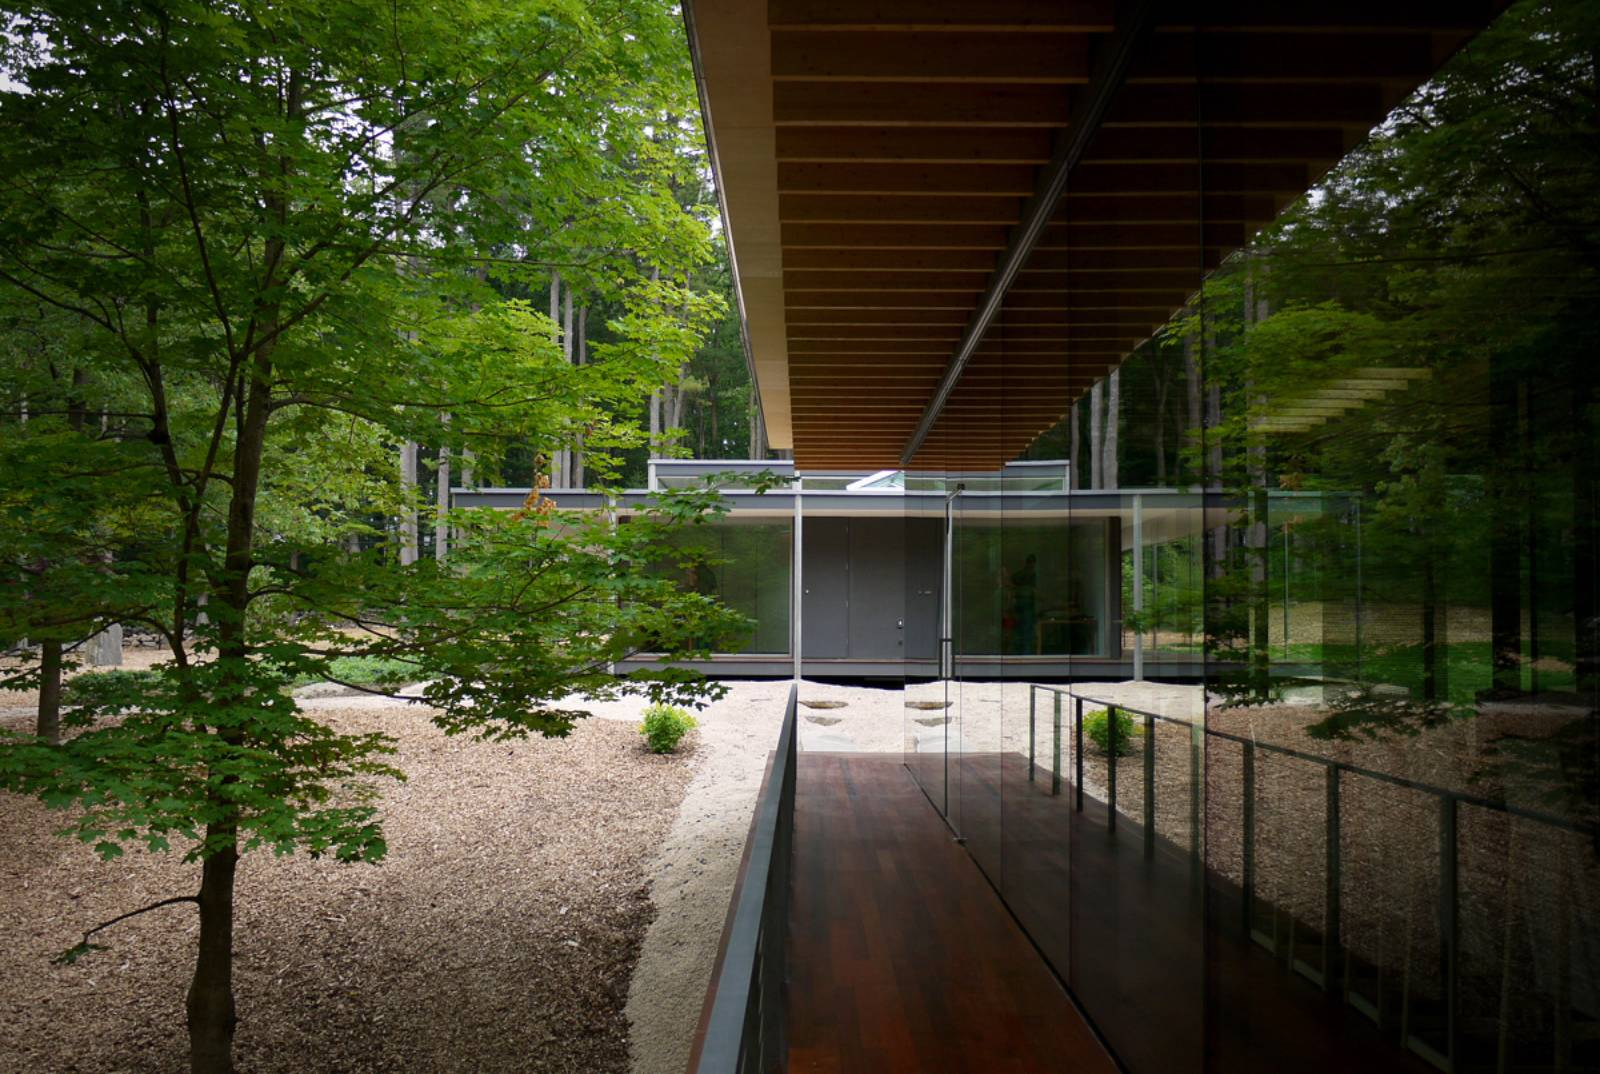 Wood Architecture: Architecture Now And The Future: GLASS/WOOD HOUSE BY KENGO